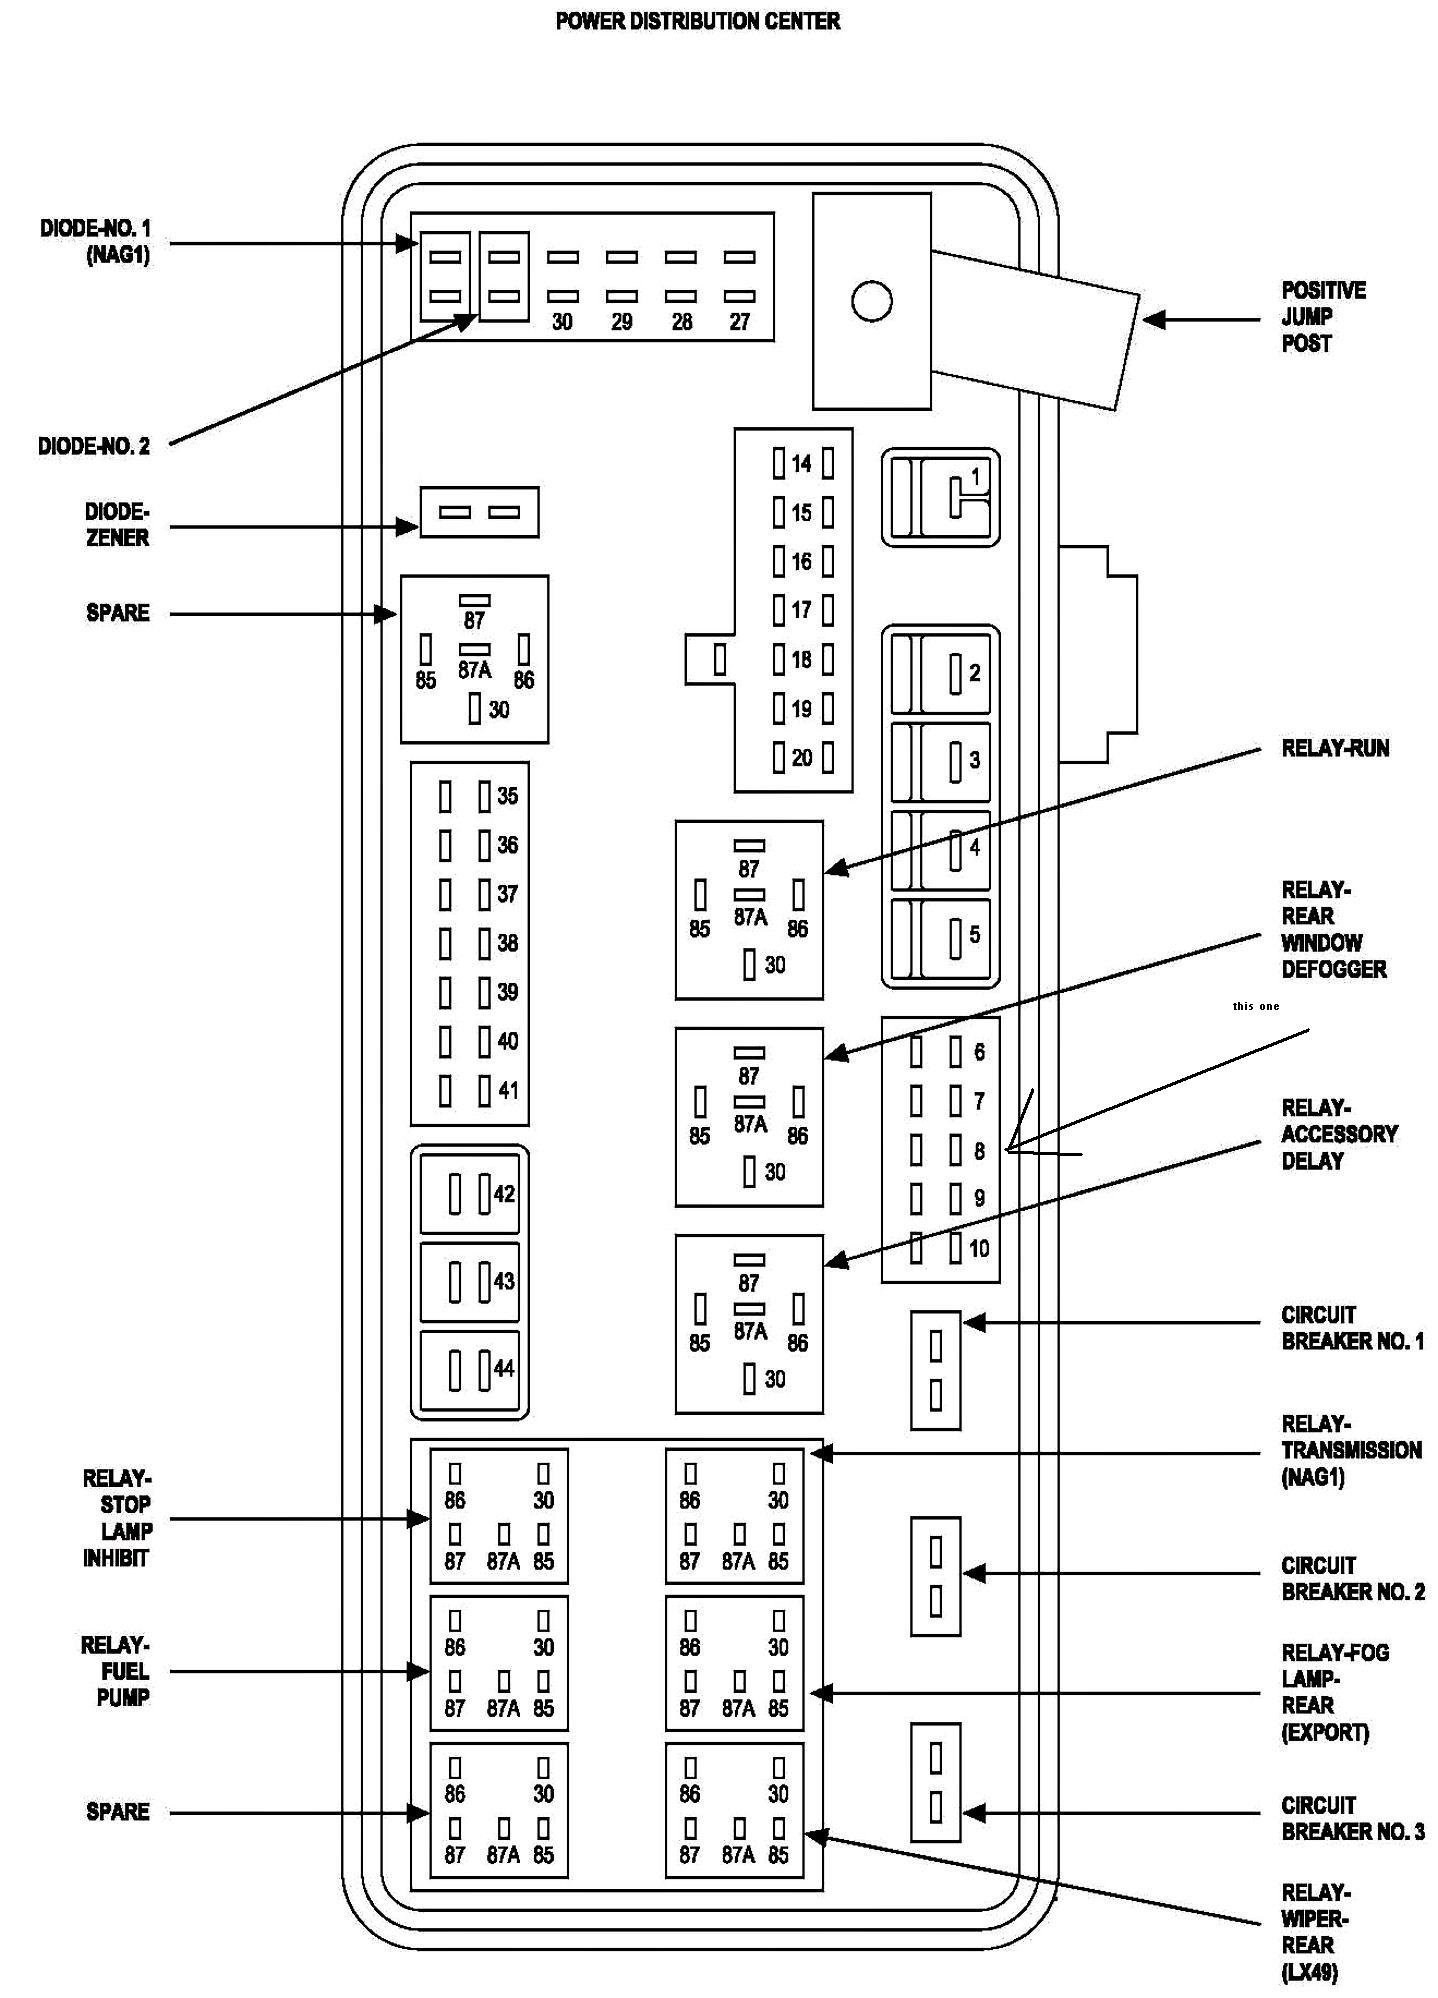 1989 Dodge Ram Fuse Box Schema Wiring Diagram Online 2001 Diesel Truck 89 Detailed 2008